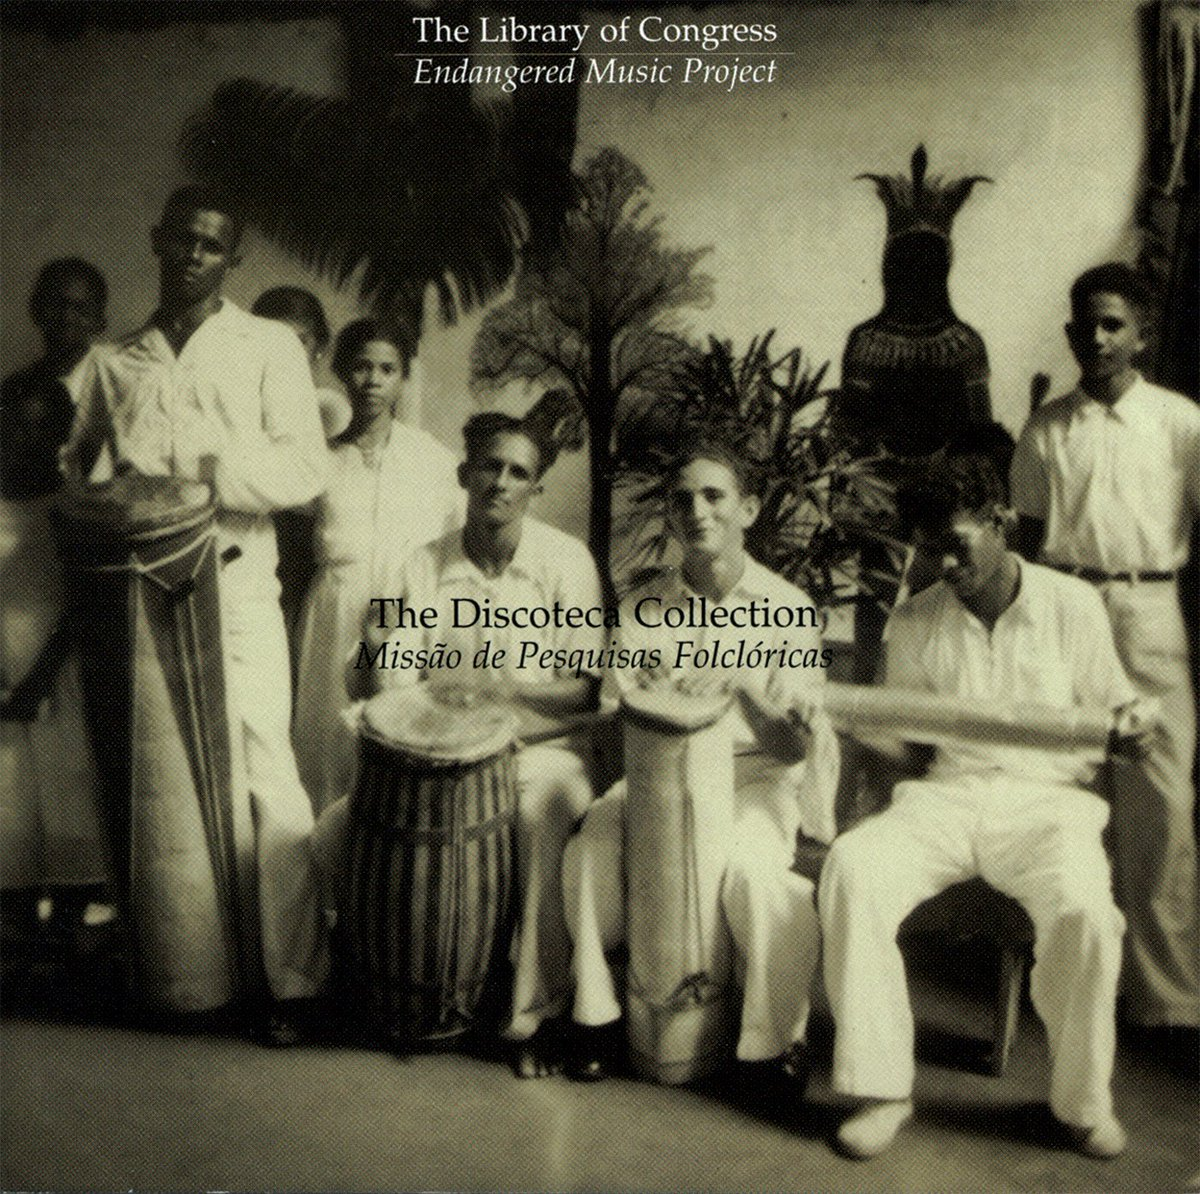 On todays #TunesTuesday were diving into the powerful sounds of northern and northeastern Brazil in 1938 as heard on The Discoteca Collection: Missão de Pesquisas Folclóricas. Have a listen to Adeus, adeus amô performed by José Aleixo Crianàa: spoti.fi/3hRG7aS